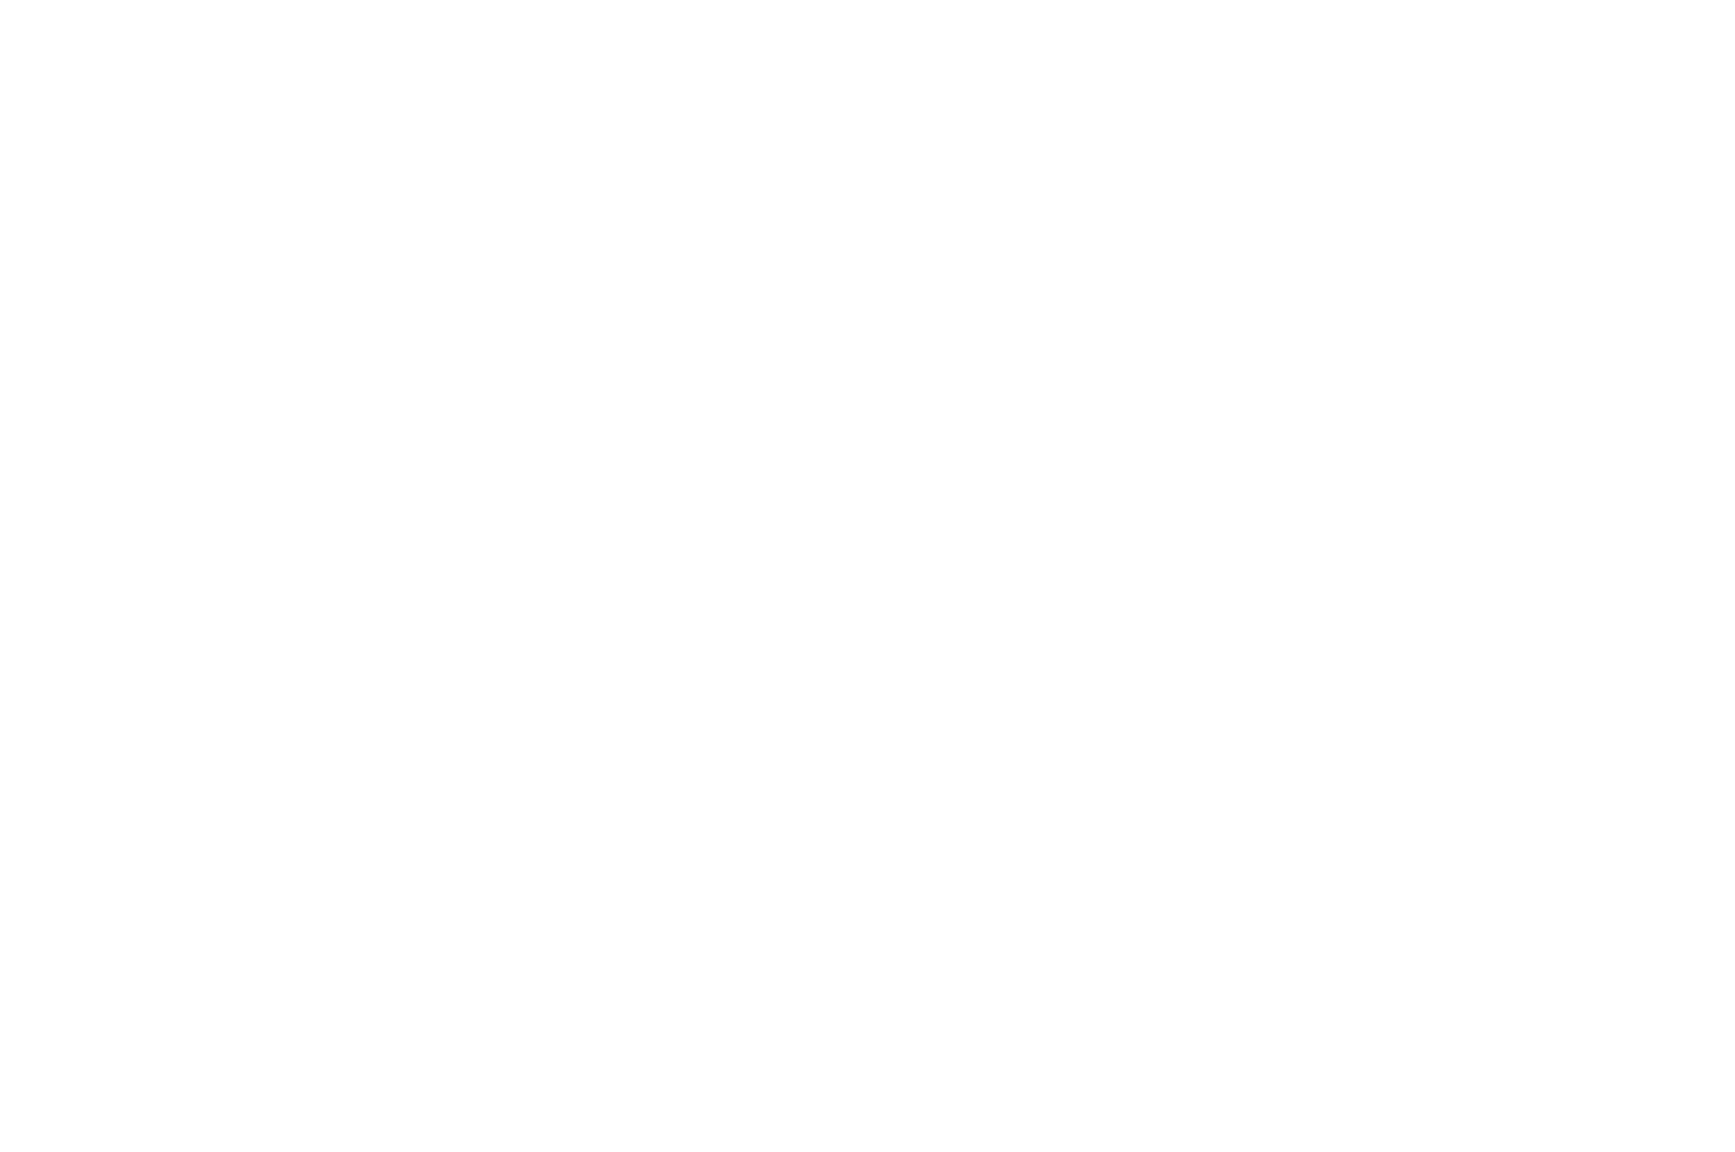 OFFICIAL SELECTION - Womens Only Entertainment Film Festival - 2017.png